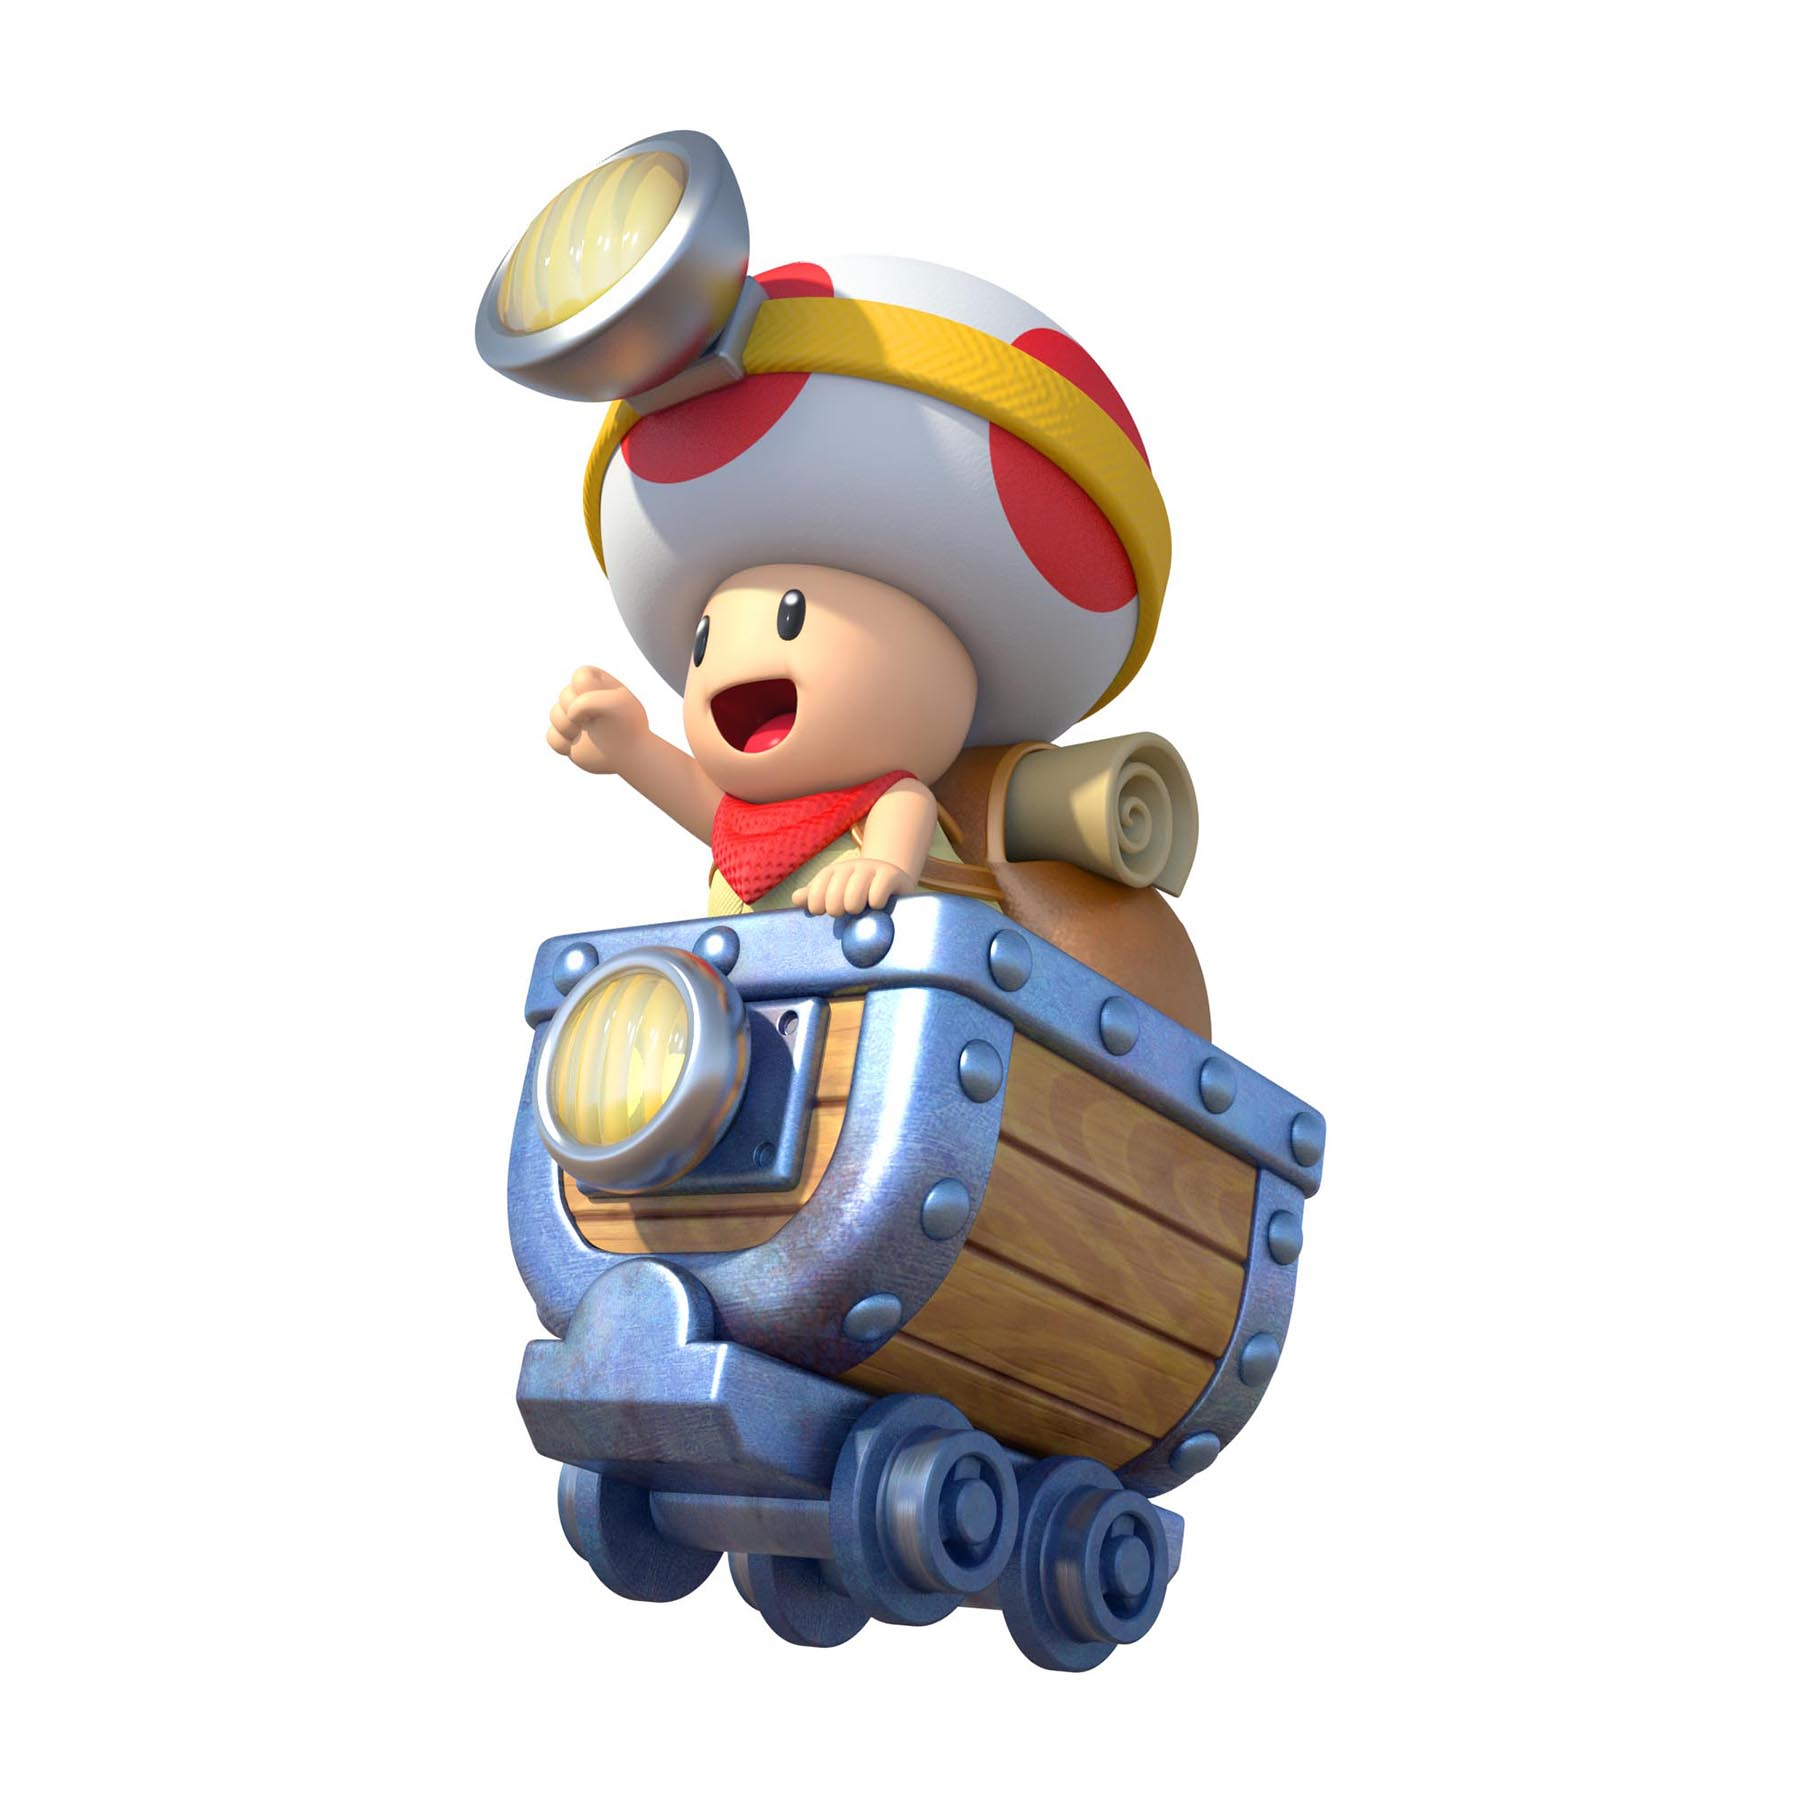 More Artwork From The Upcoming Captain Toad Treasure